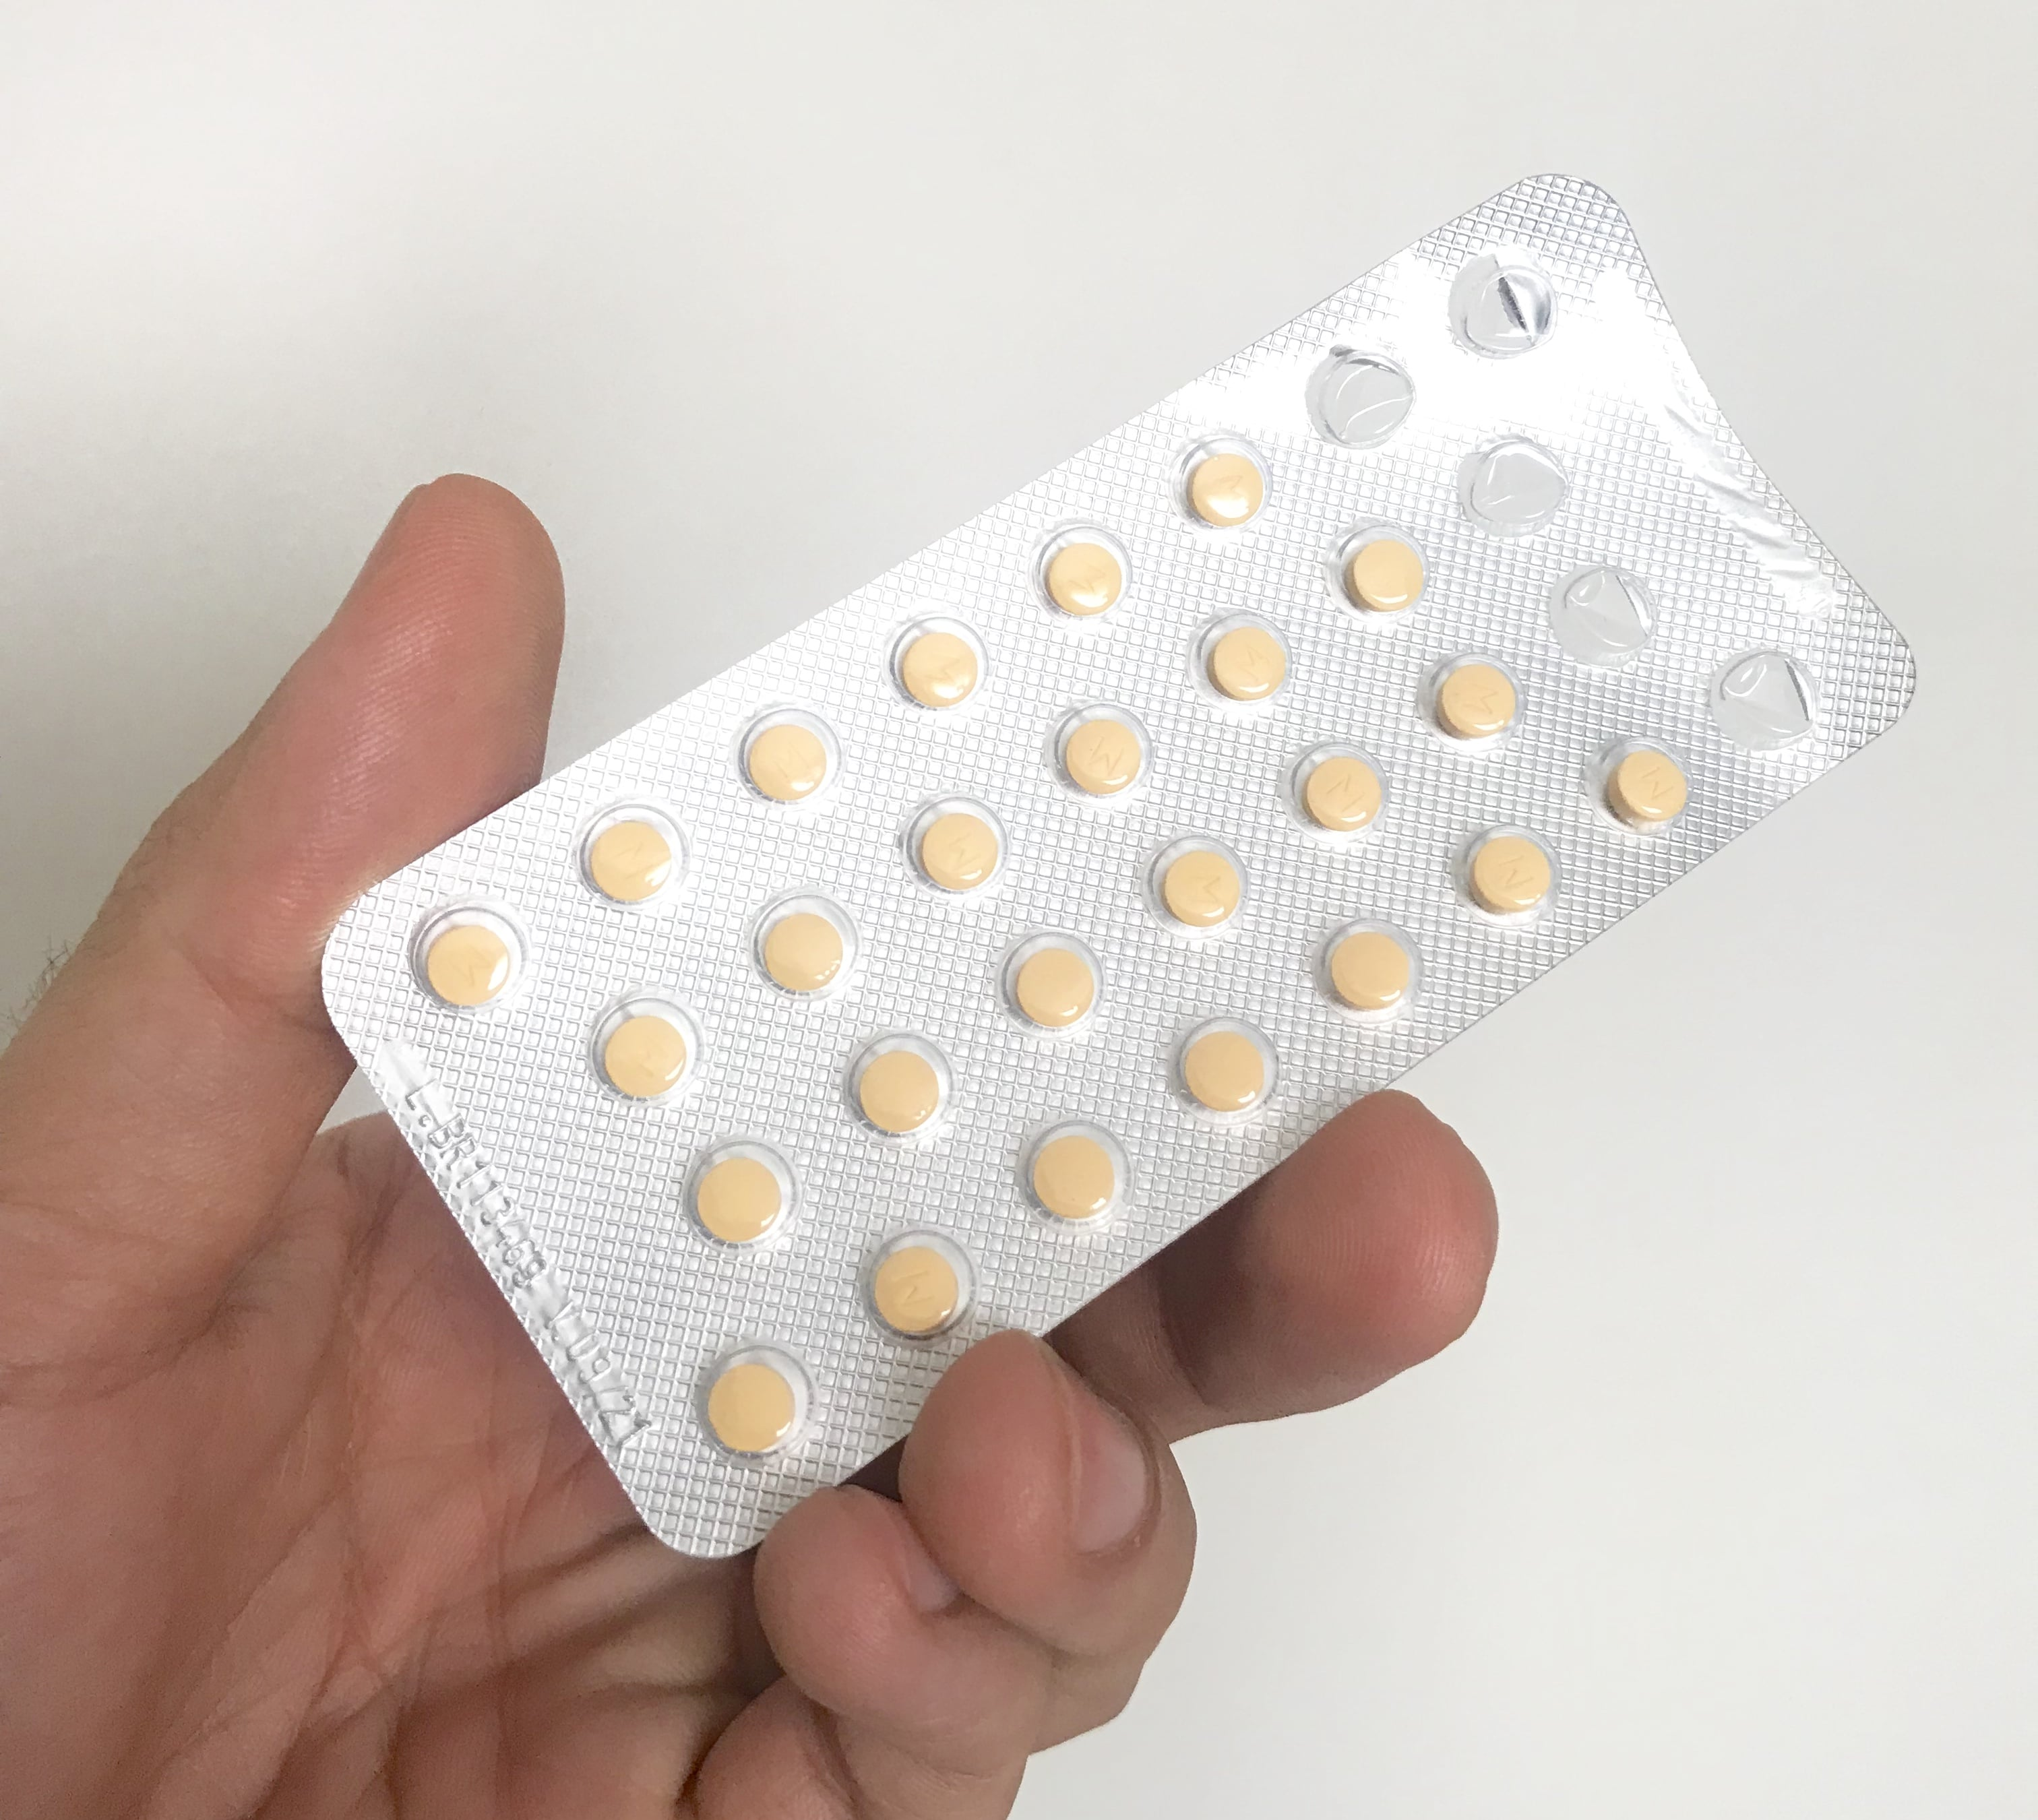 Ivermectin for sale cape town